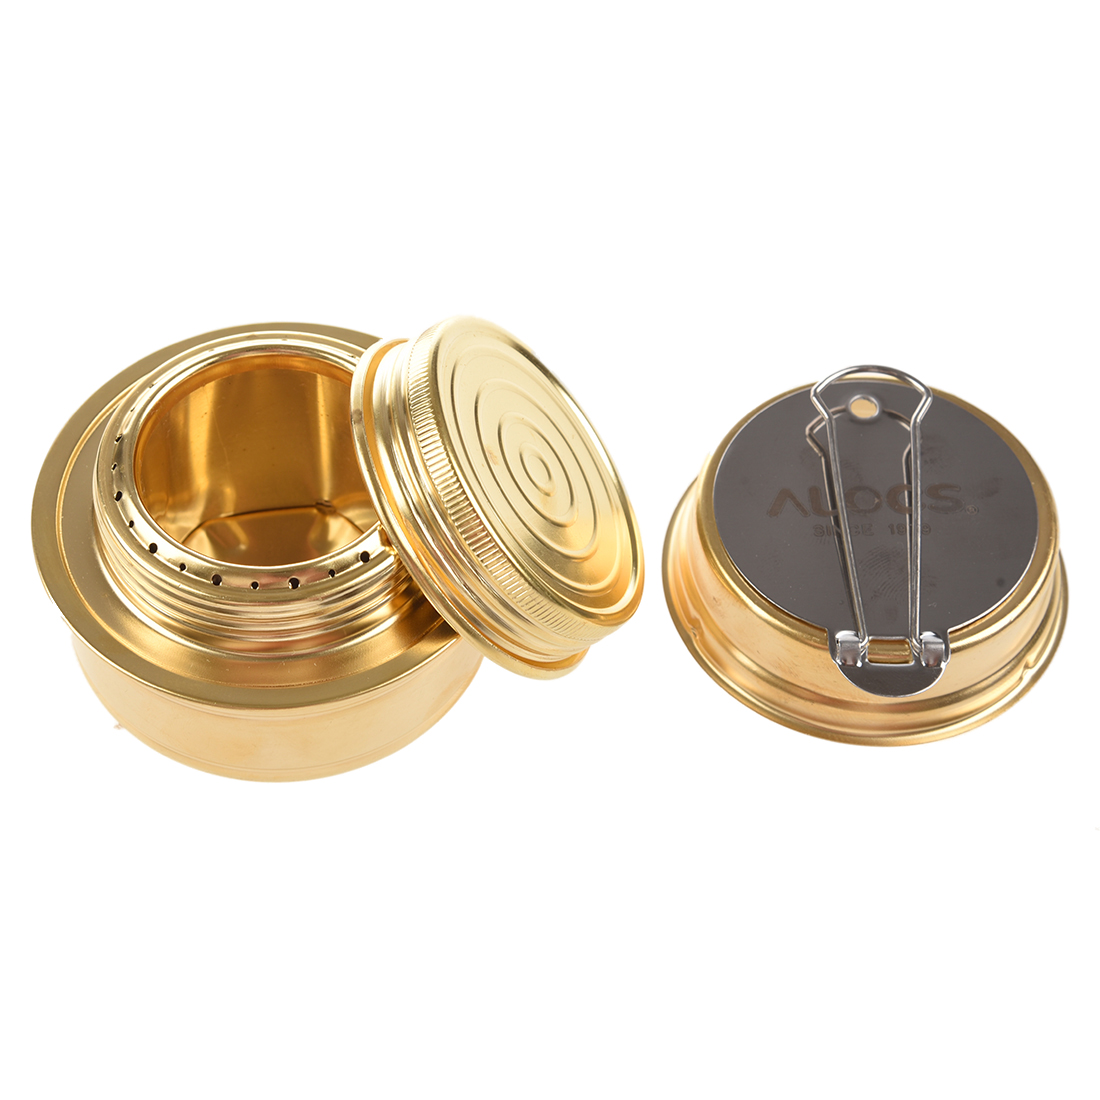 Super sell ALOCS Portable Mini Ultra-light Spirit Alcohol Stove Outdoor Backpacking Hiking Camping Furnace with Stand